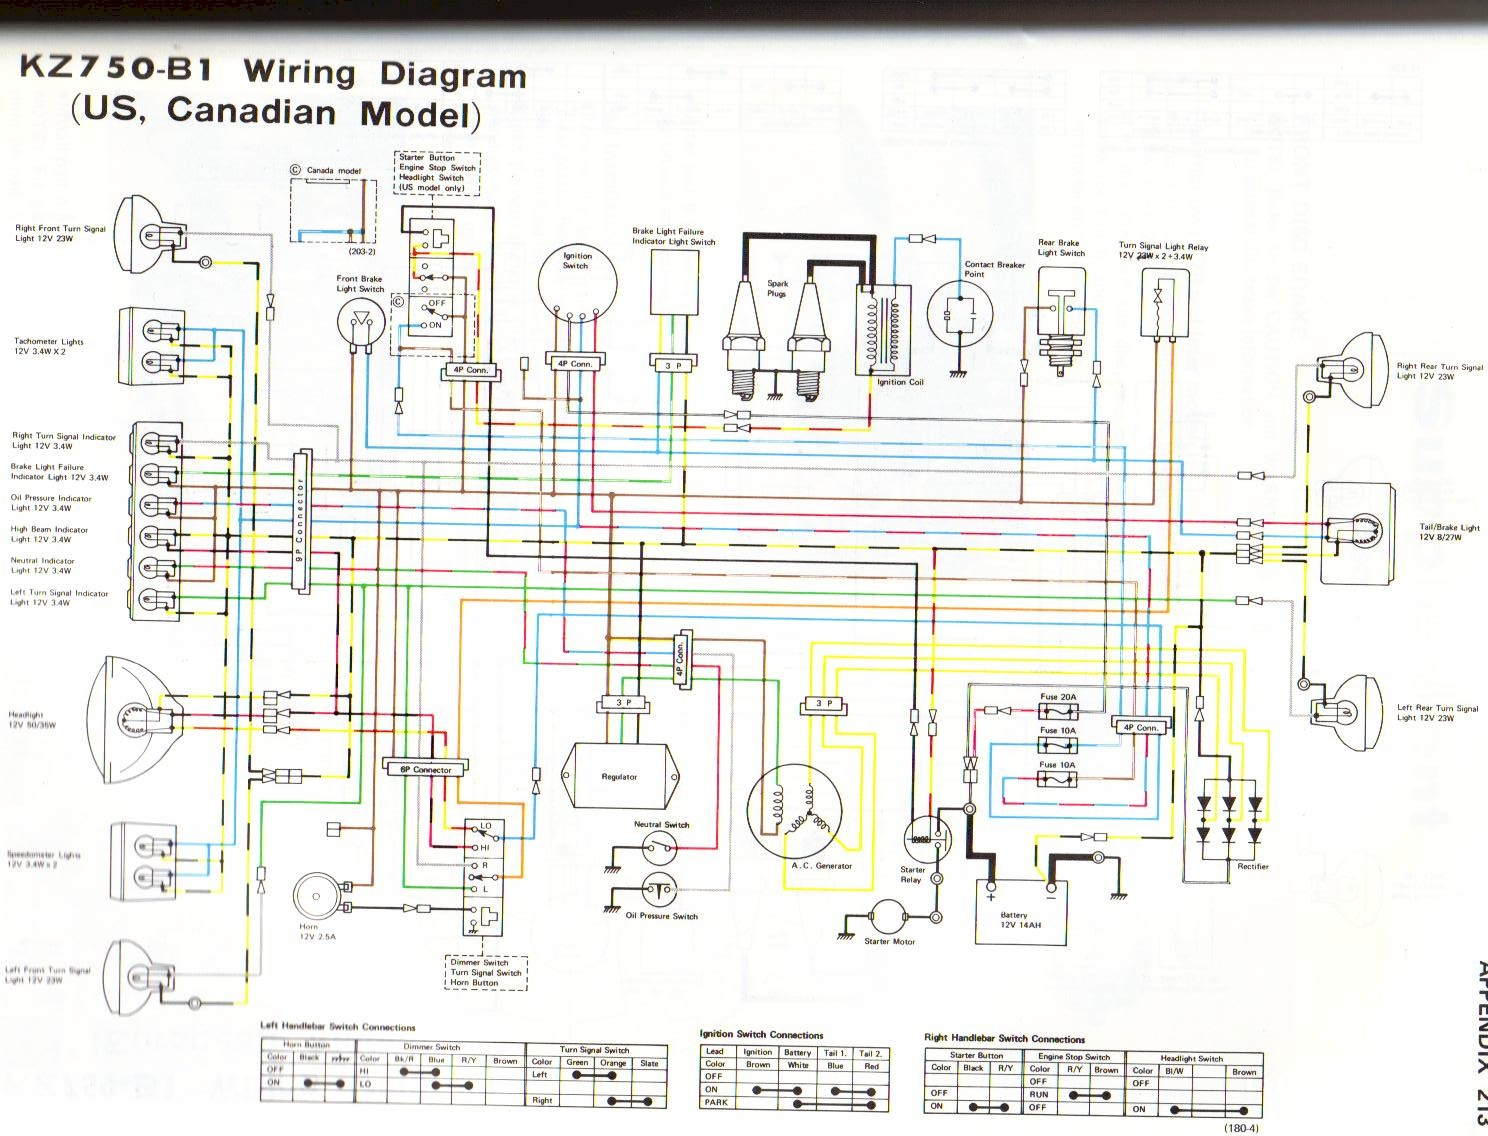 kz750b1?resize=640%2C489 1982 kawasaki kz750 manual pdf hobbiesxstyle kz750 wiring diagram at crackthecode.co